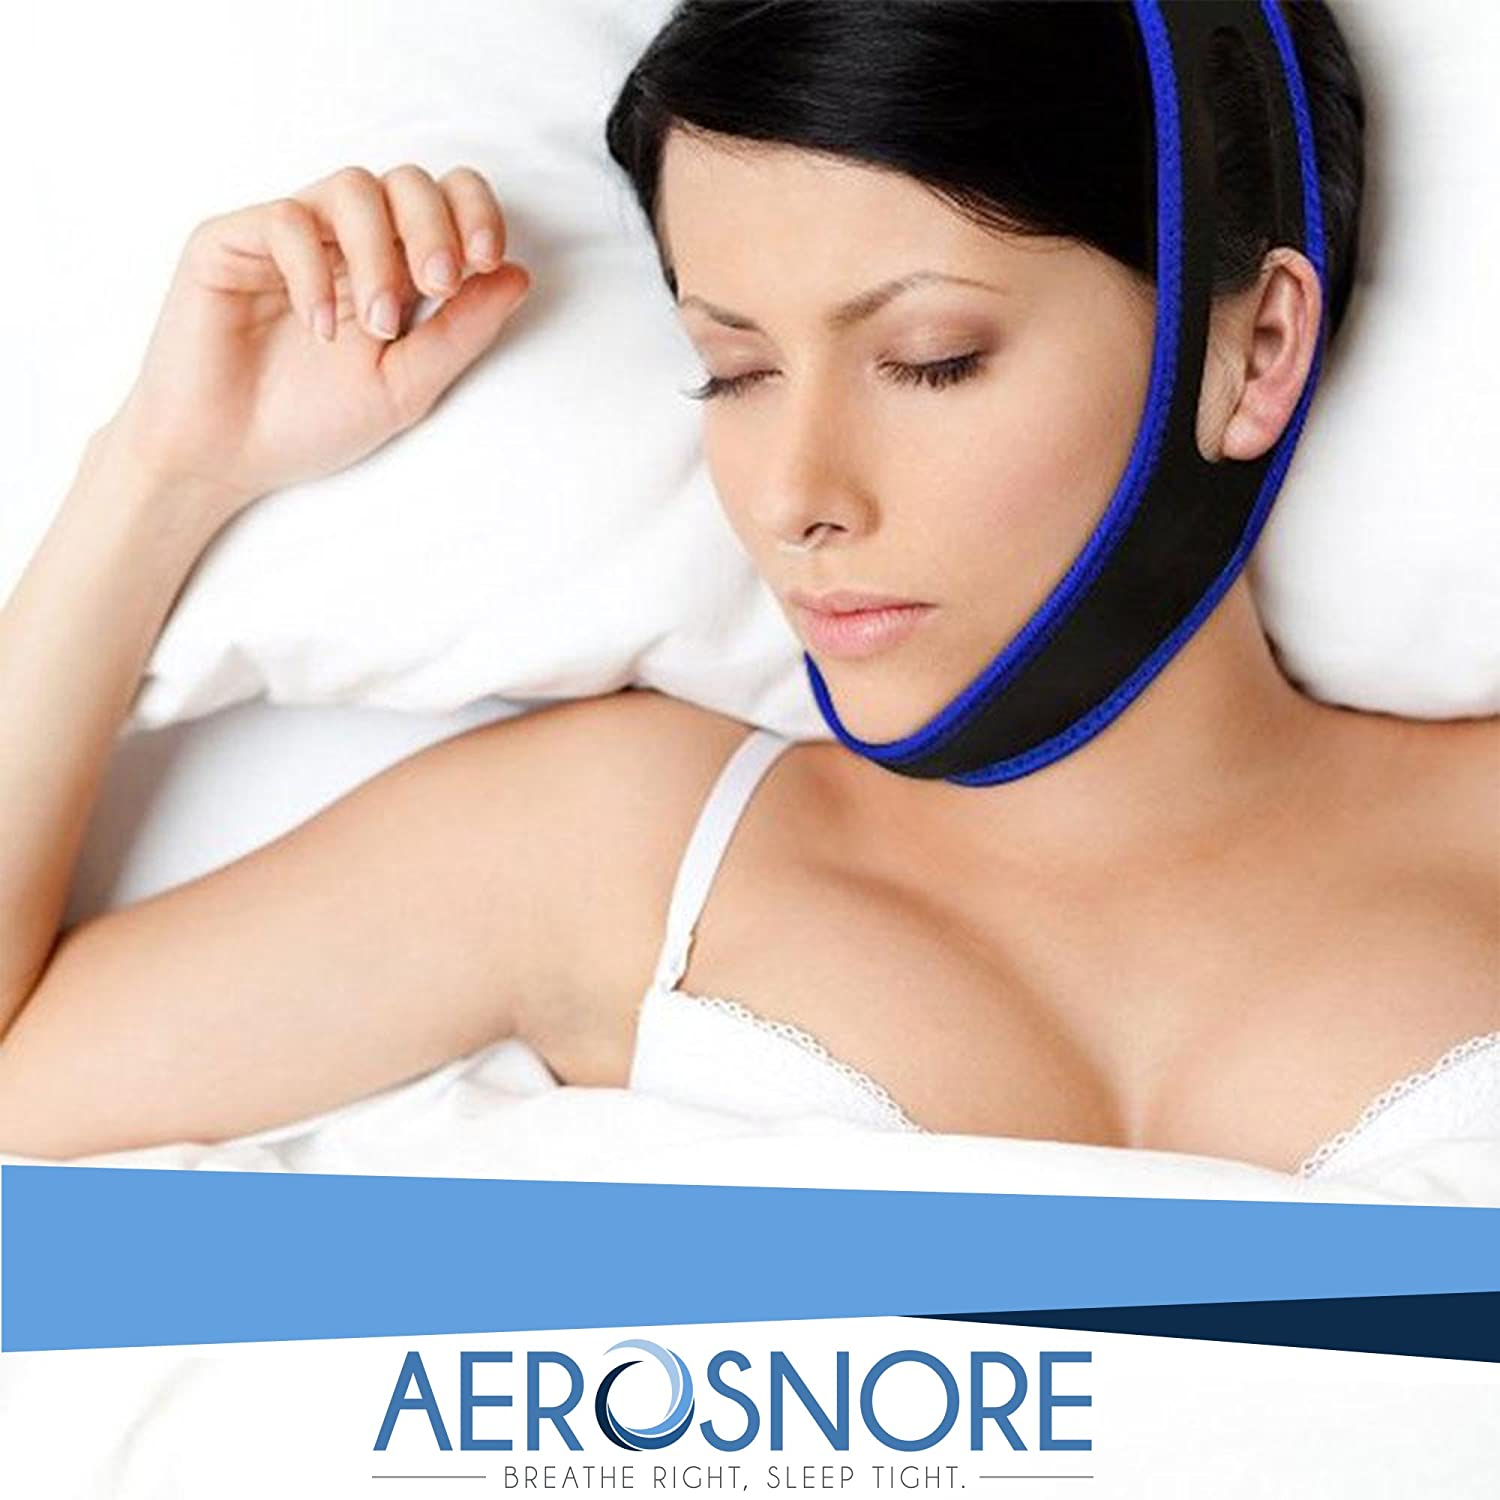 Anti Snoring Chin Strap - Premium Snore Stopper Guard for a Natural Snore Relief - Anti-Snoring Mask for Men and Women